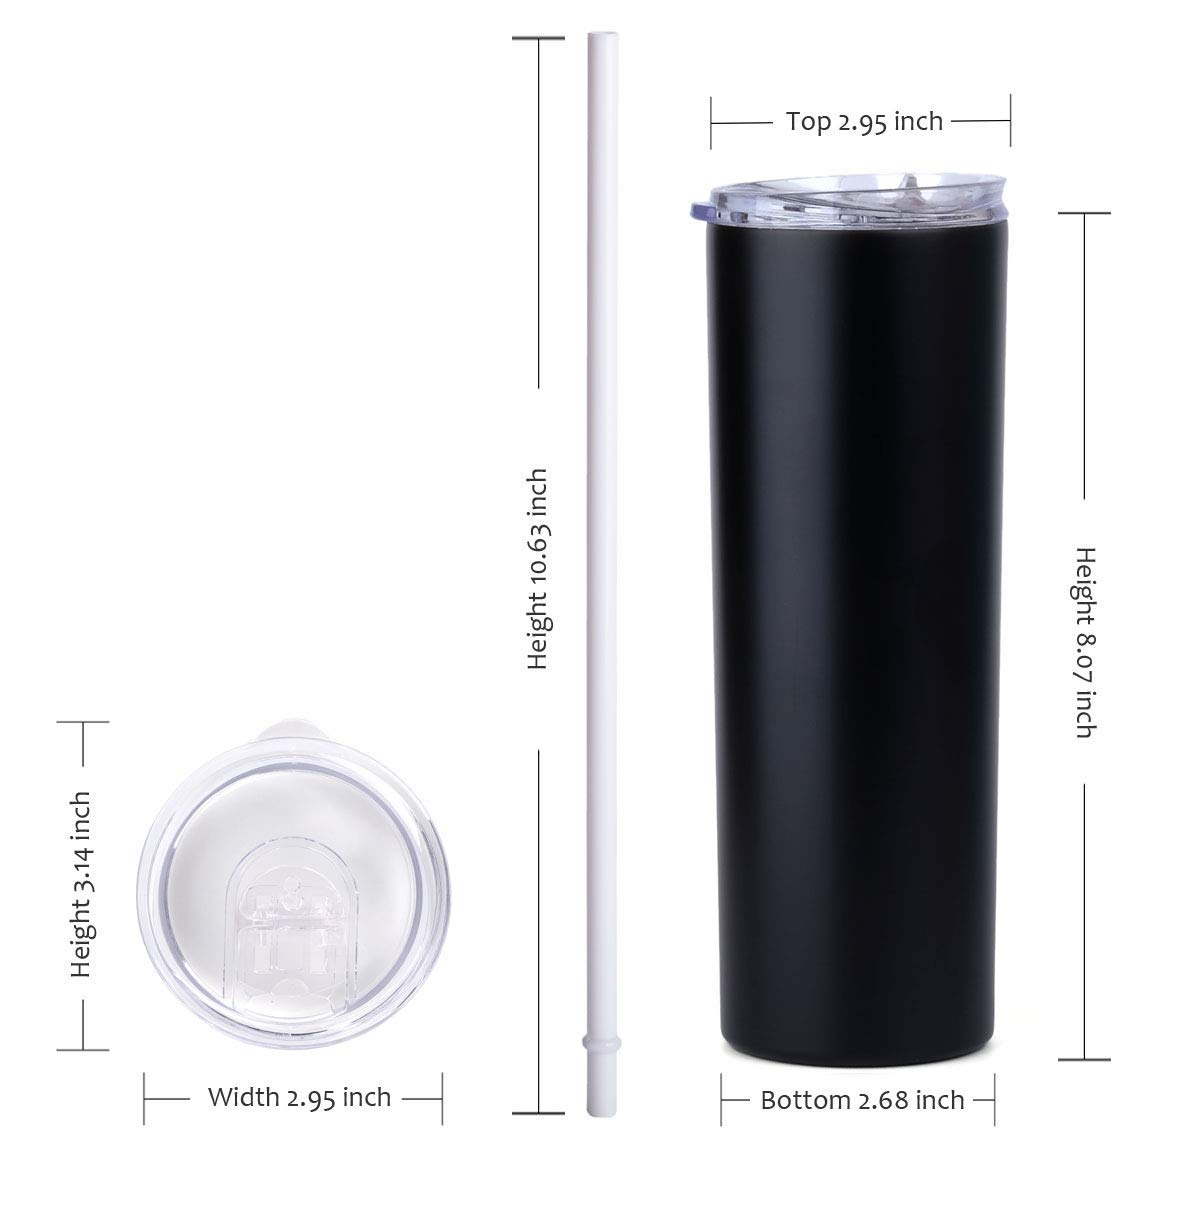 Stellar 20 oz. Skinny Steel 12 Pack Double Wall Stainless Tumbler (White) by Stellar (Image #5)